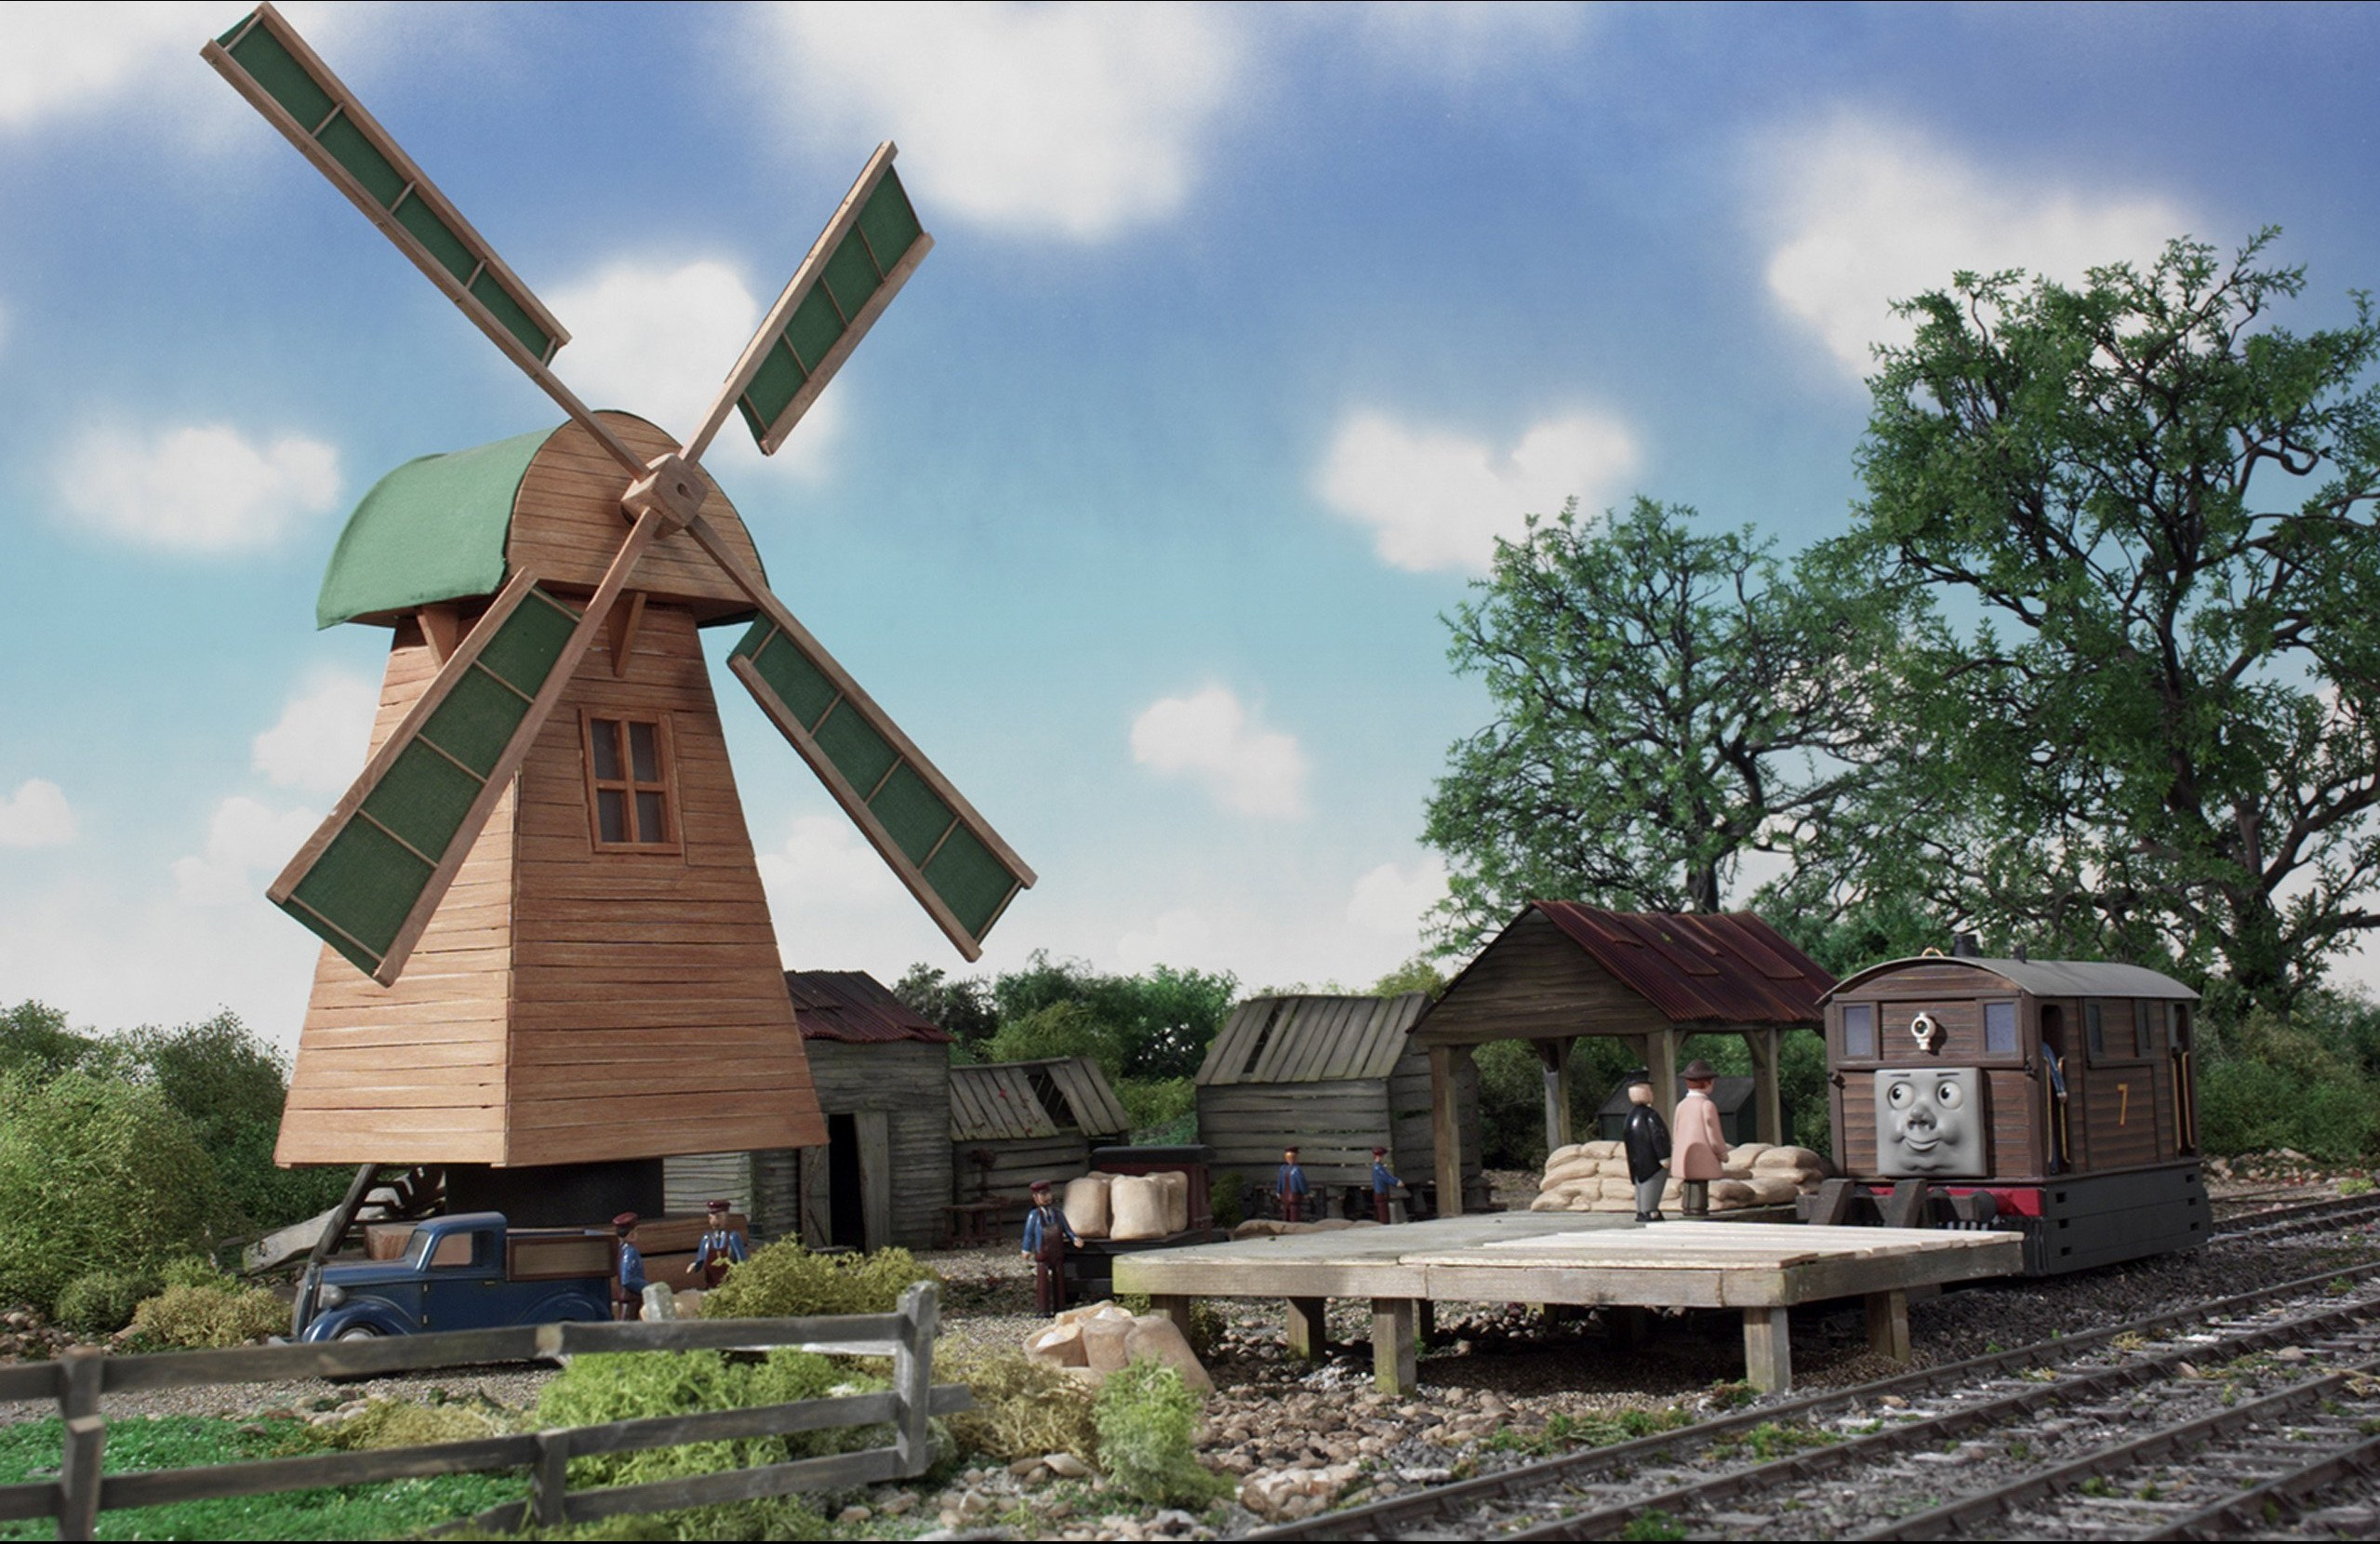 File:Toby'sWindmill58.jpg